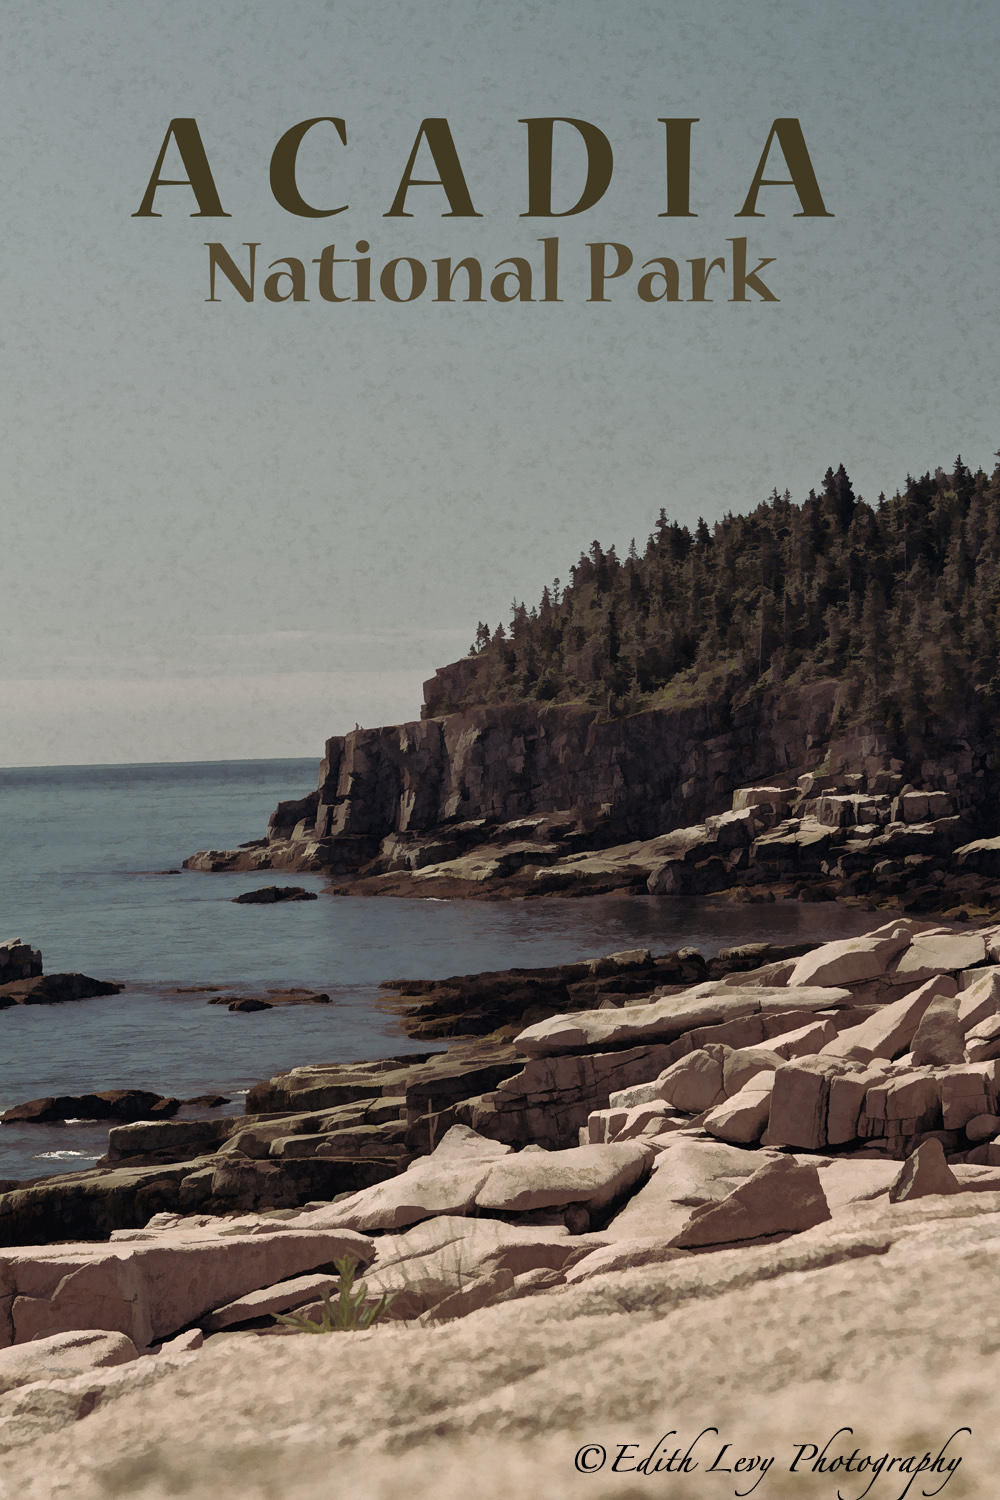 A vintage style travel poster of Acadia National Park